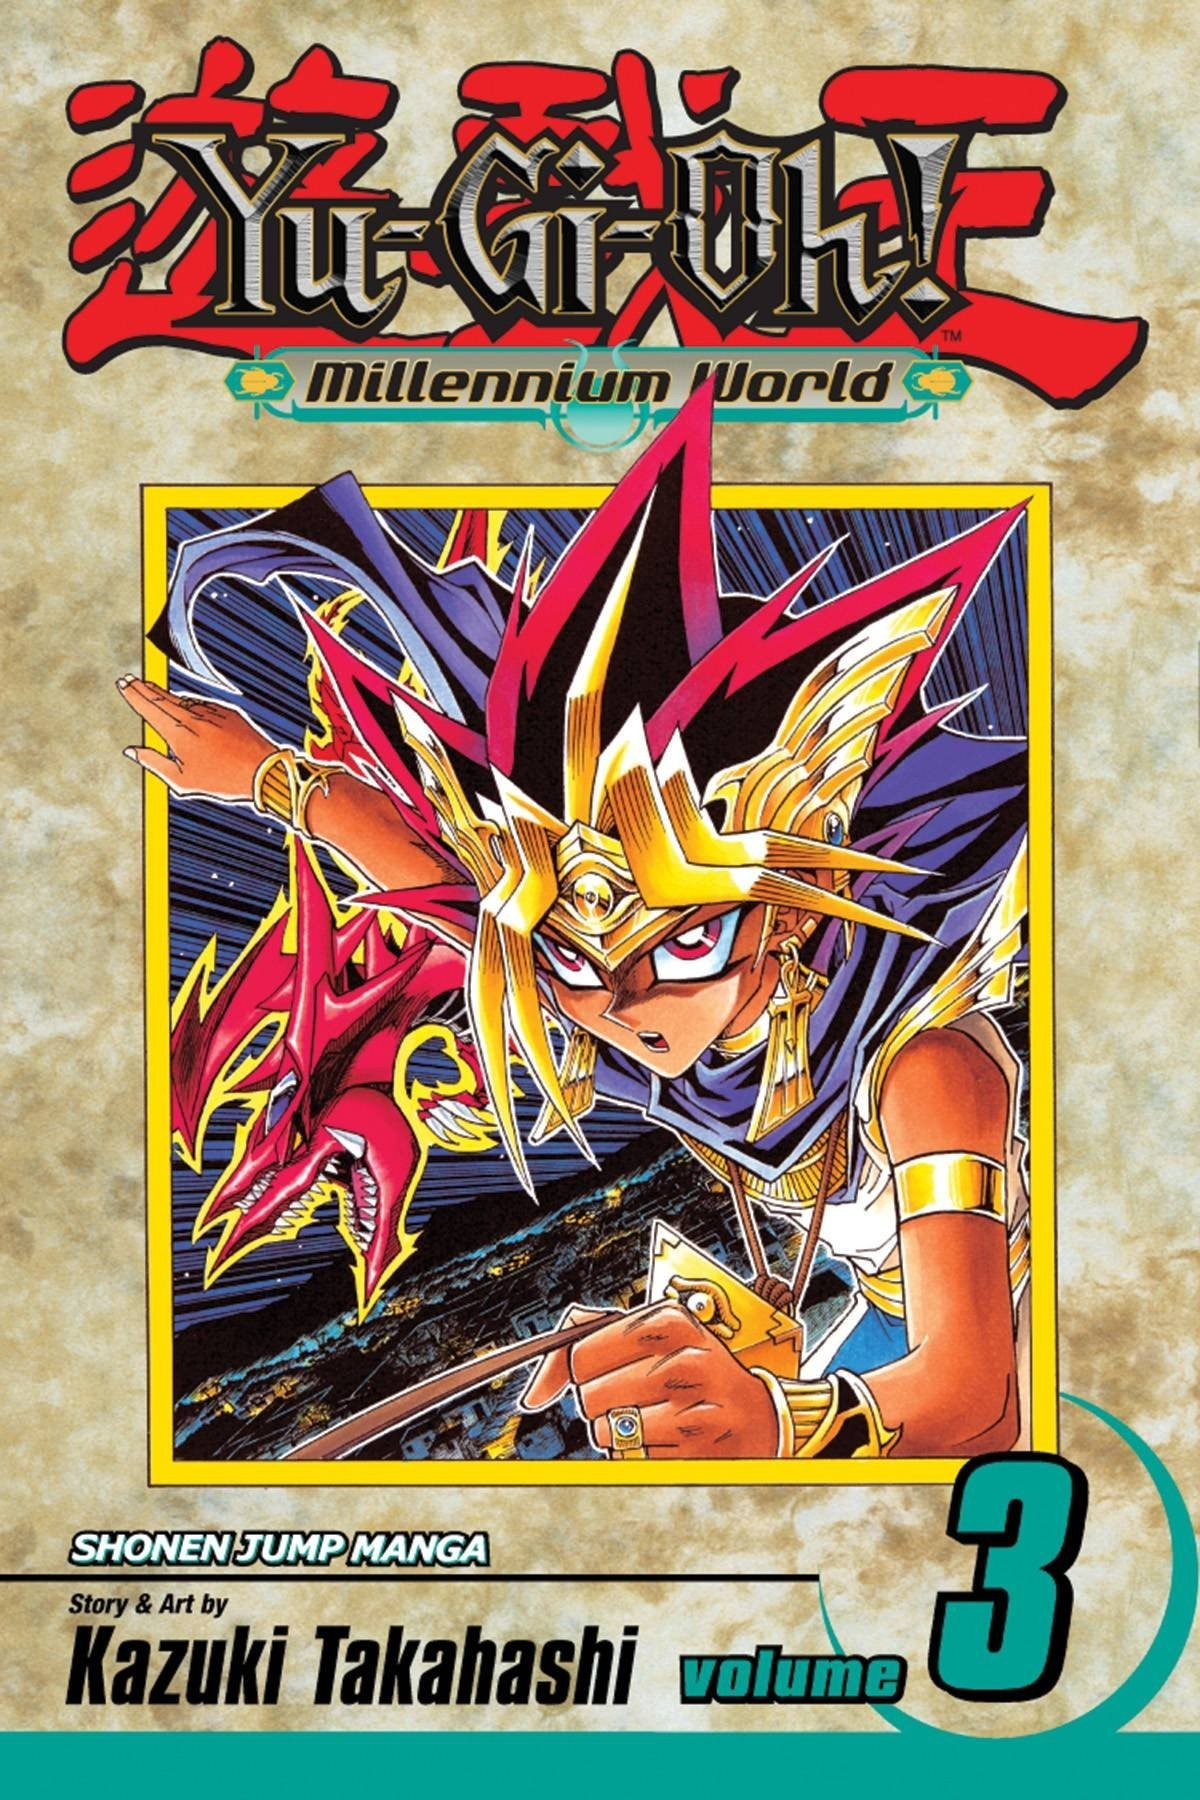 the last arc was weird. >Manga ends with atem learning slightly more about himself than he did before >leaves his friends to go spend his afterlife with p